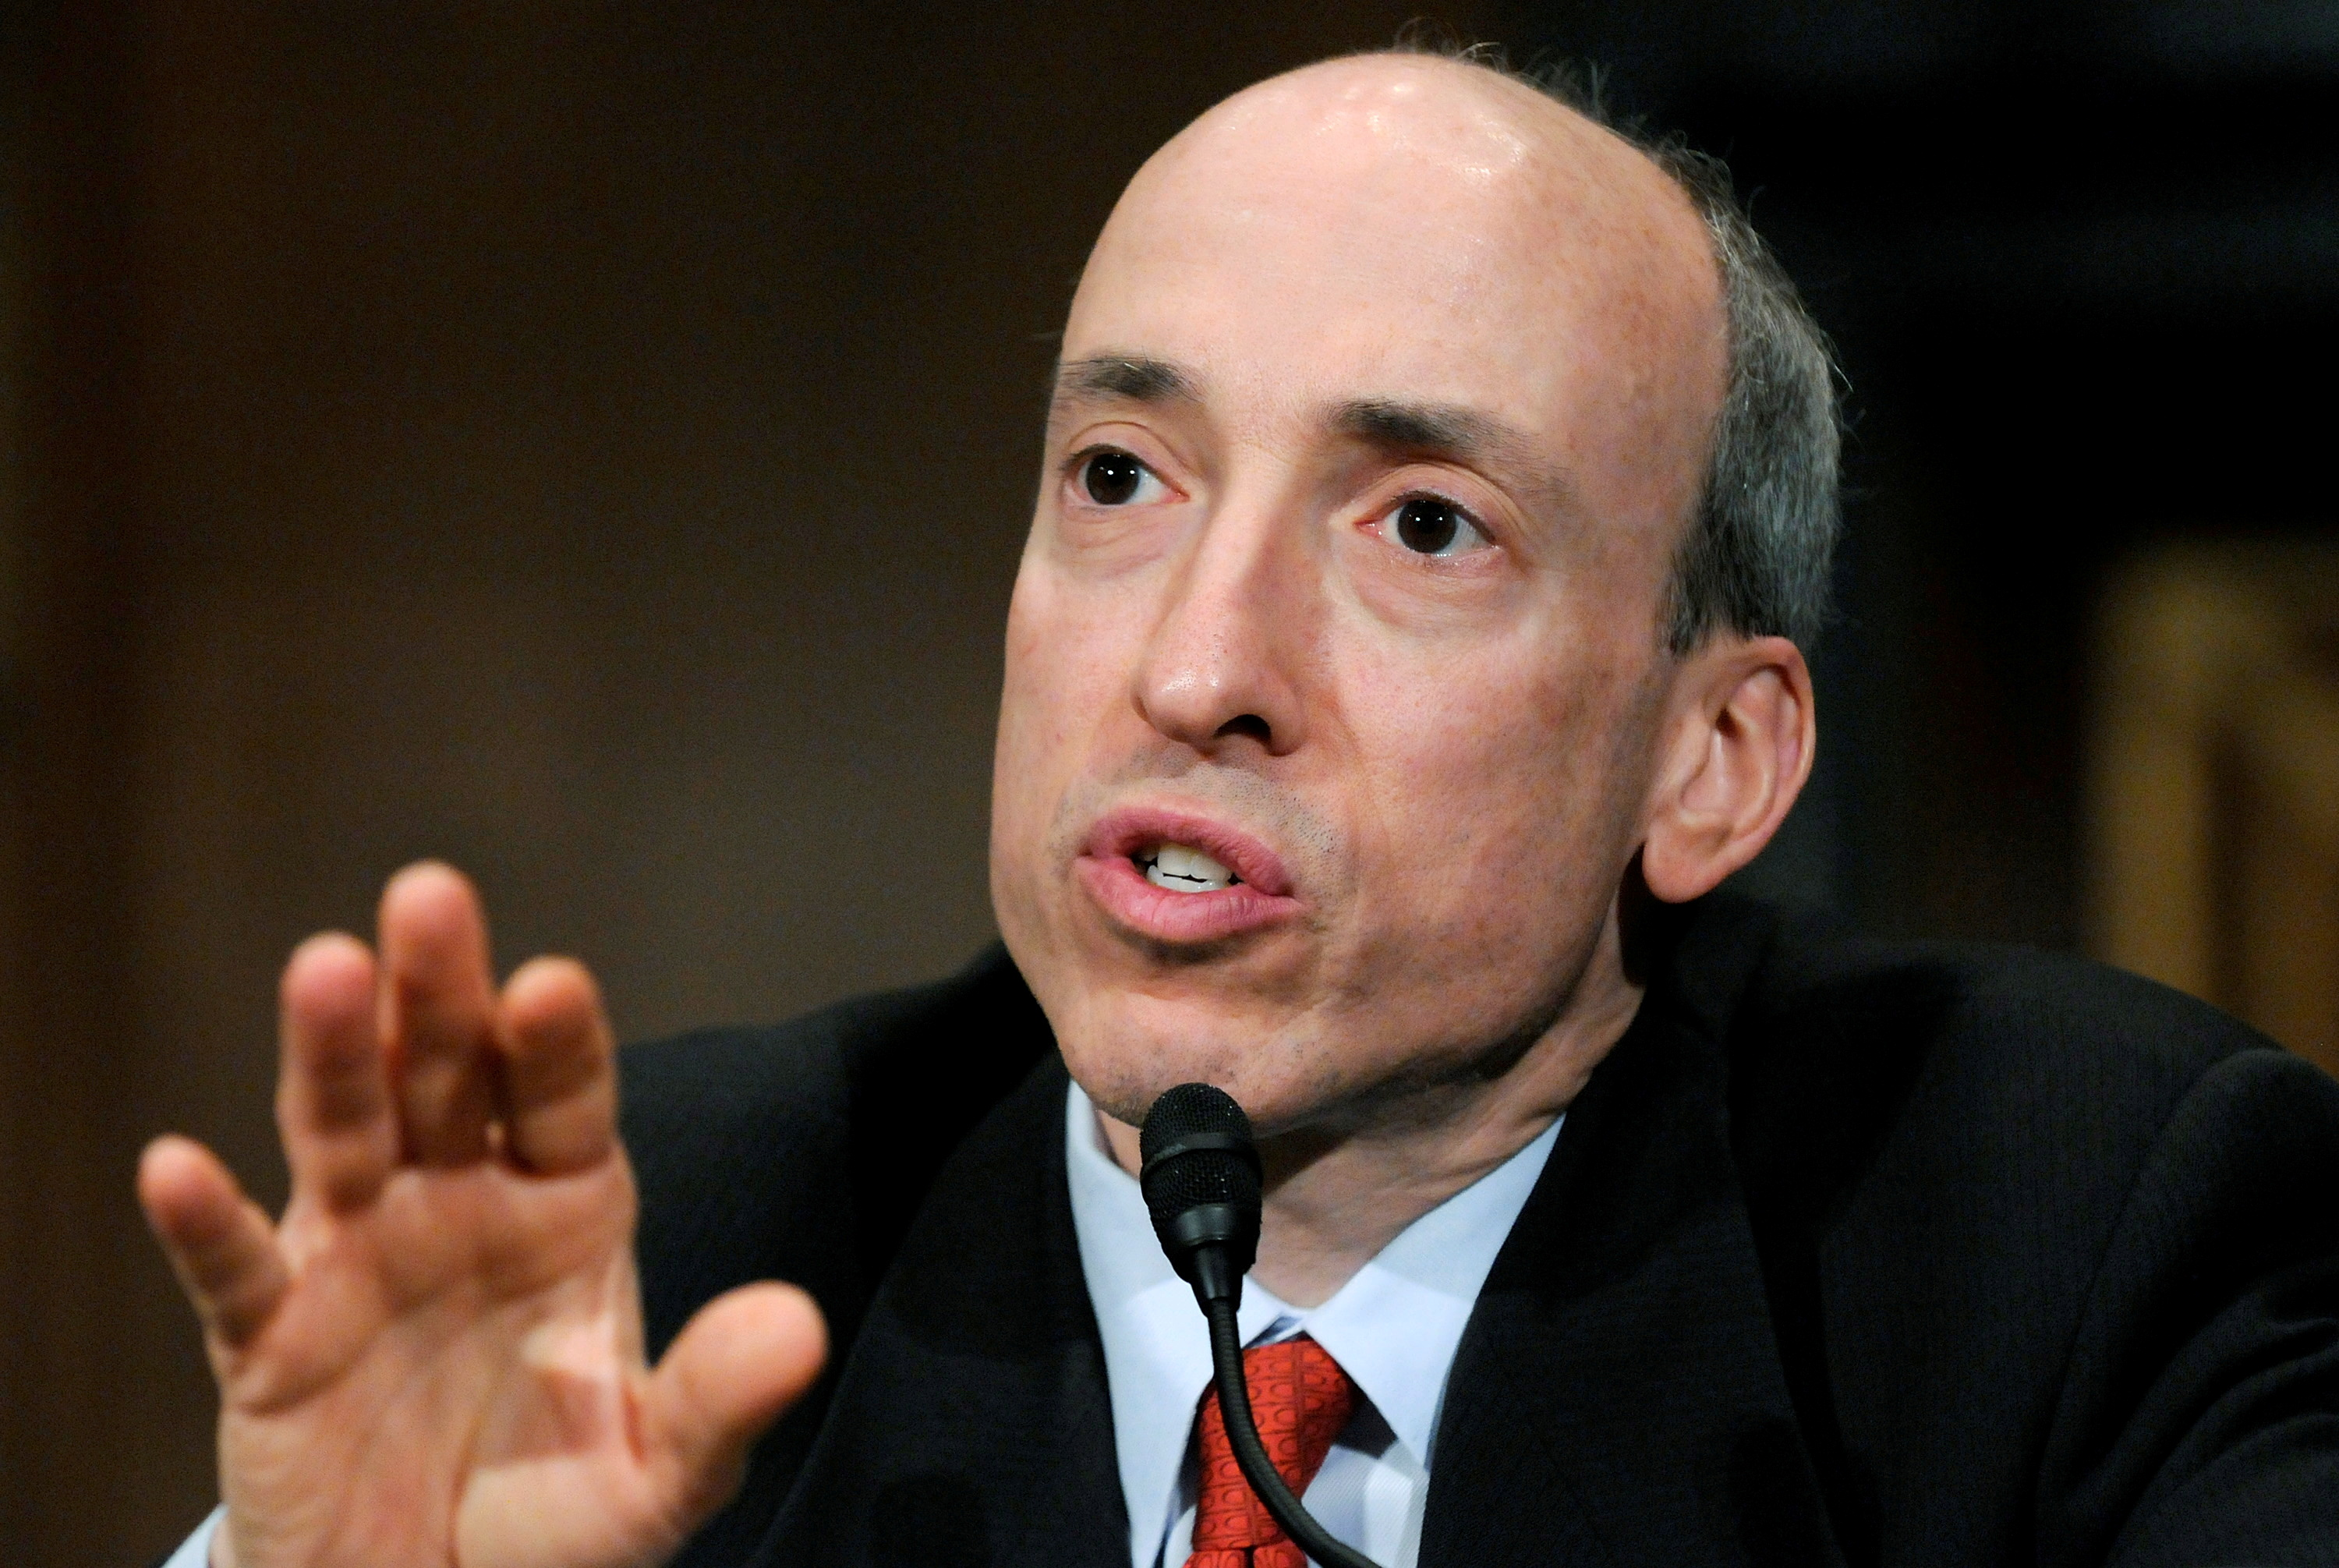 Commodity Futures Trading Commission Chairman Gary Gensler testifies at a U.S. Senate Banking Committee hearing on systemic risk and market oversight on Capitol Hill in Washington May 22, 2012.  REUTERS/Jonathan Ernst/File Photo